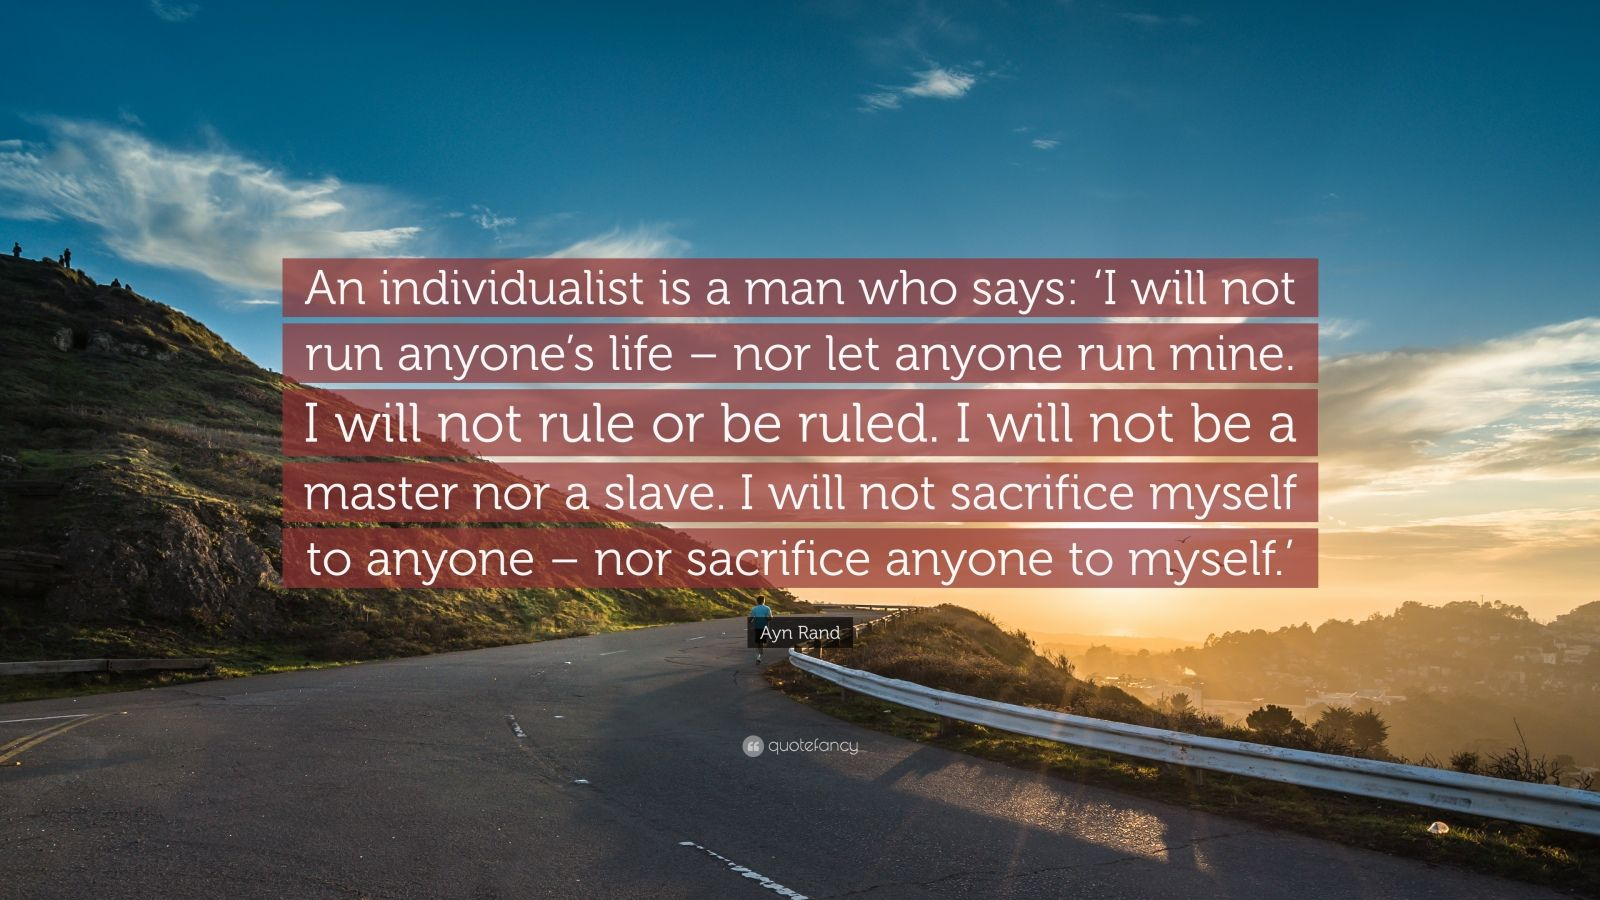 """Ayn Rand Quote: """"An individualist is a man who says: 'I will not run anyone's life – nor let anyone run mine. I will not rule or be ruled. I will not be a master nor a slave. I will not sacrifice myself to anyone – nor sacrifice anyone to myself.'"""""""